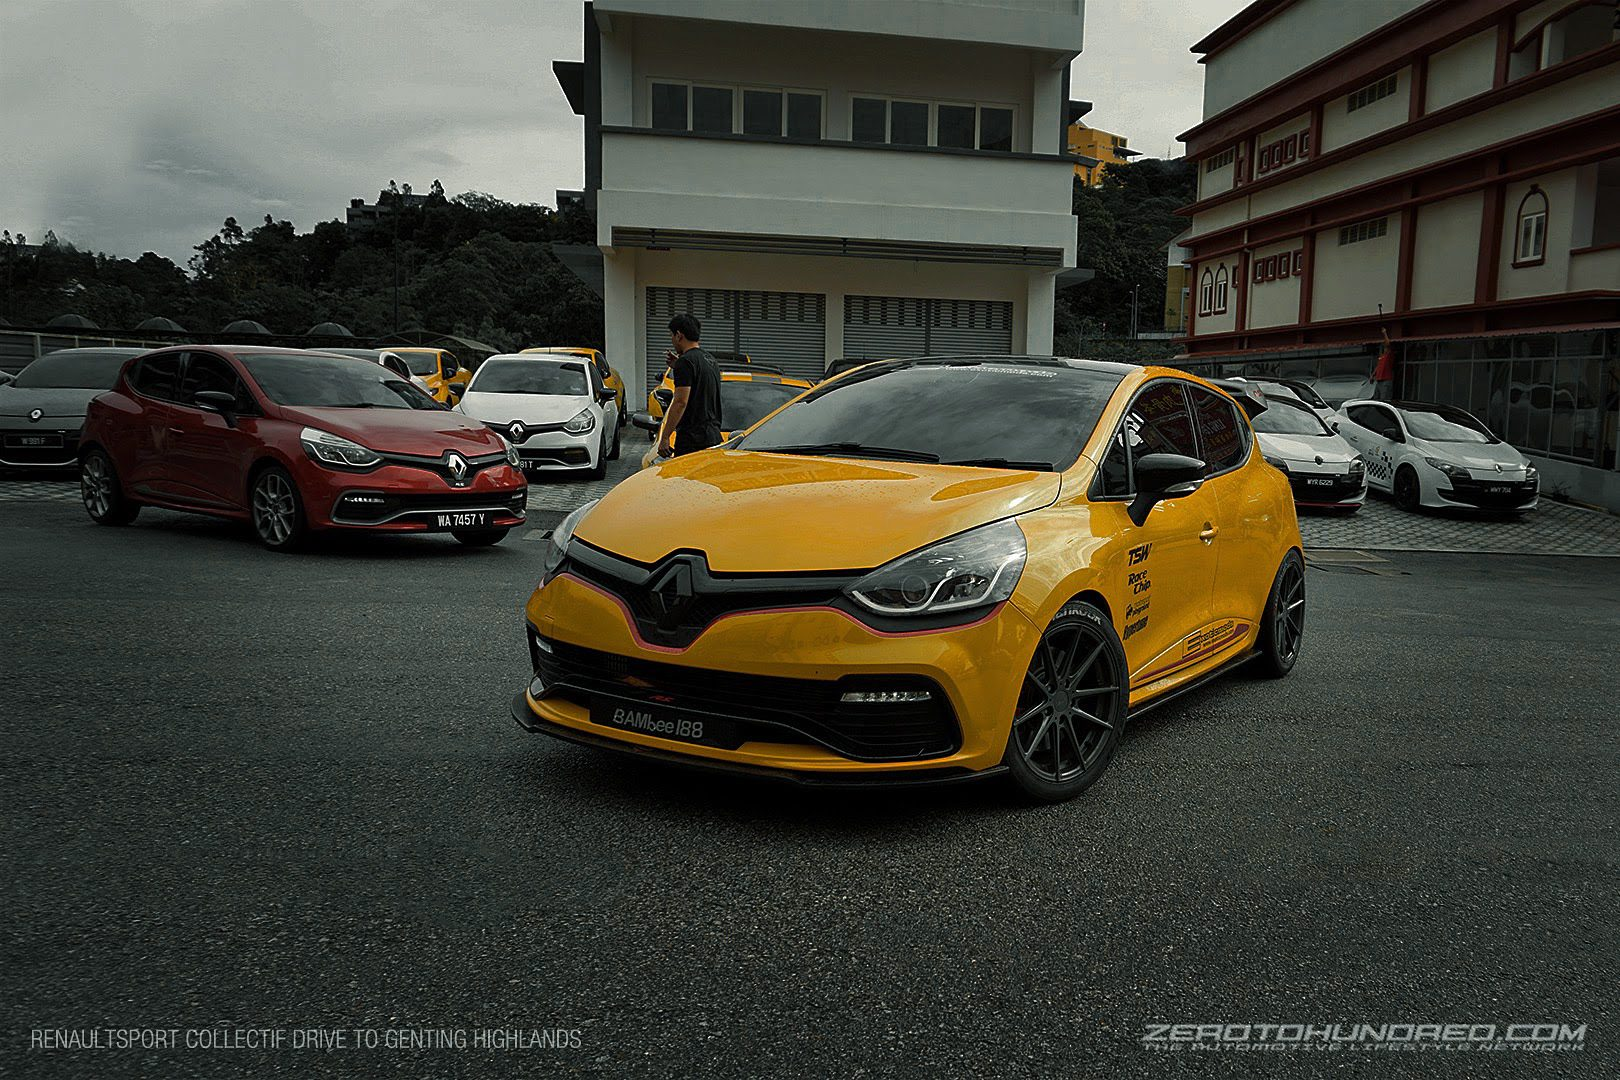 clio rs 200 turbo by exotic mods tested at sepang circuit. Black Bedroom Furniture Sets. Home Design Ideas